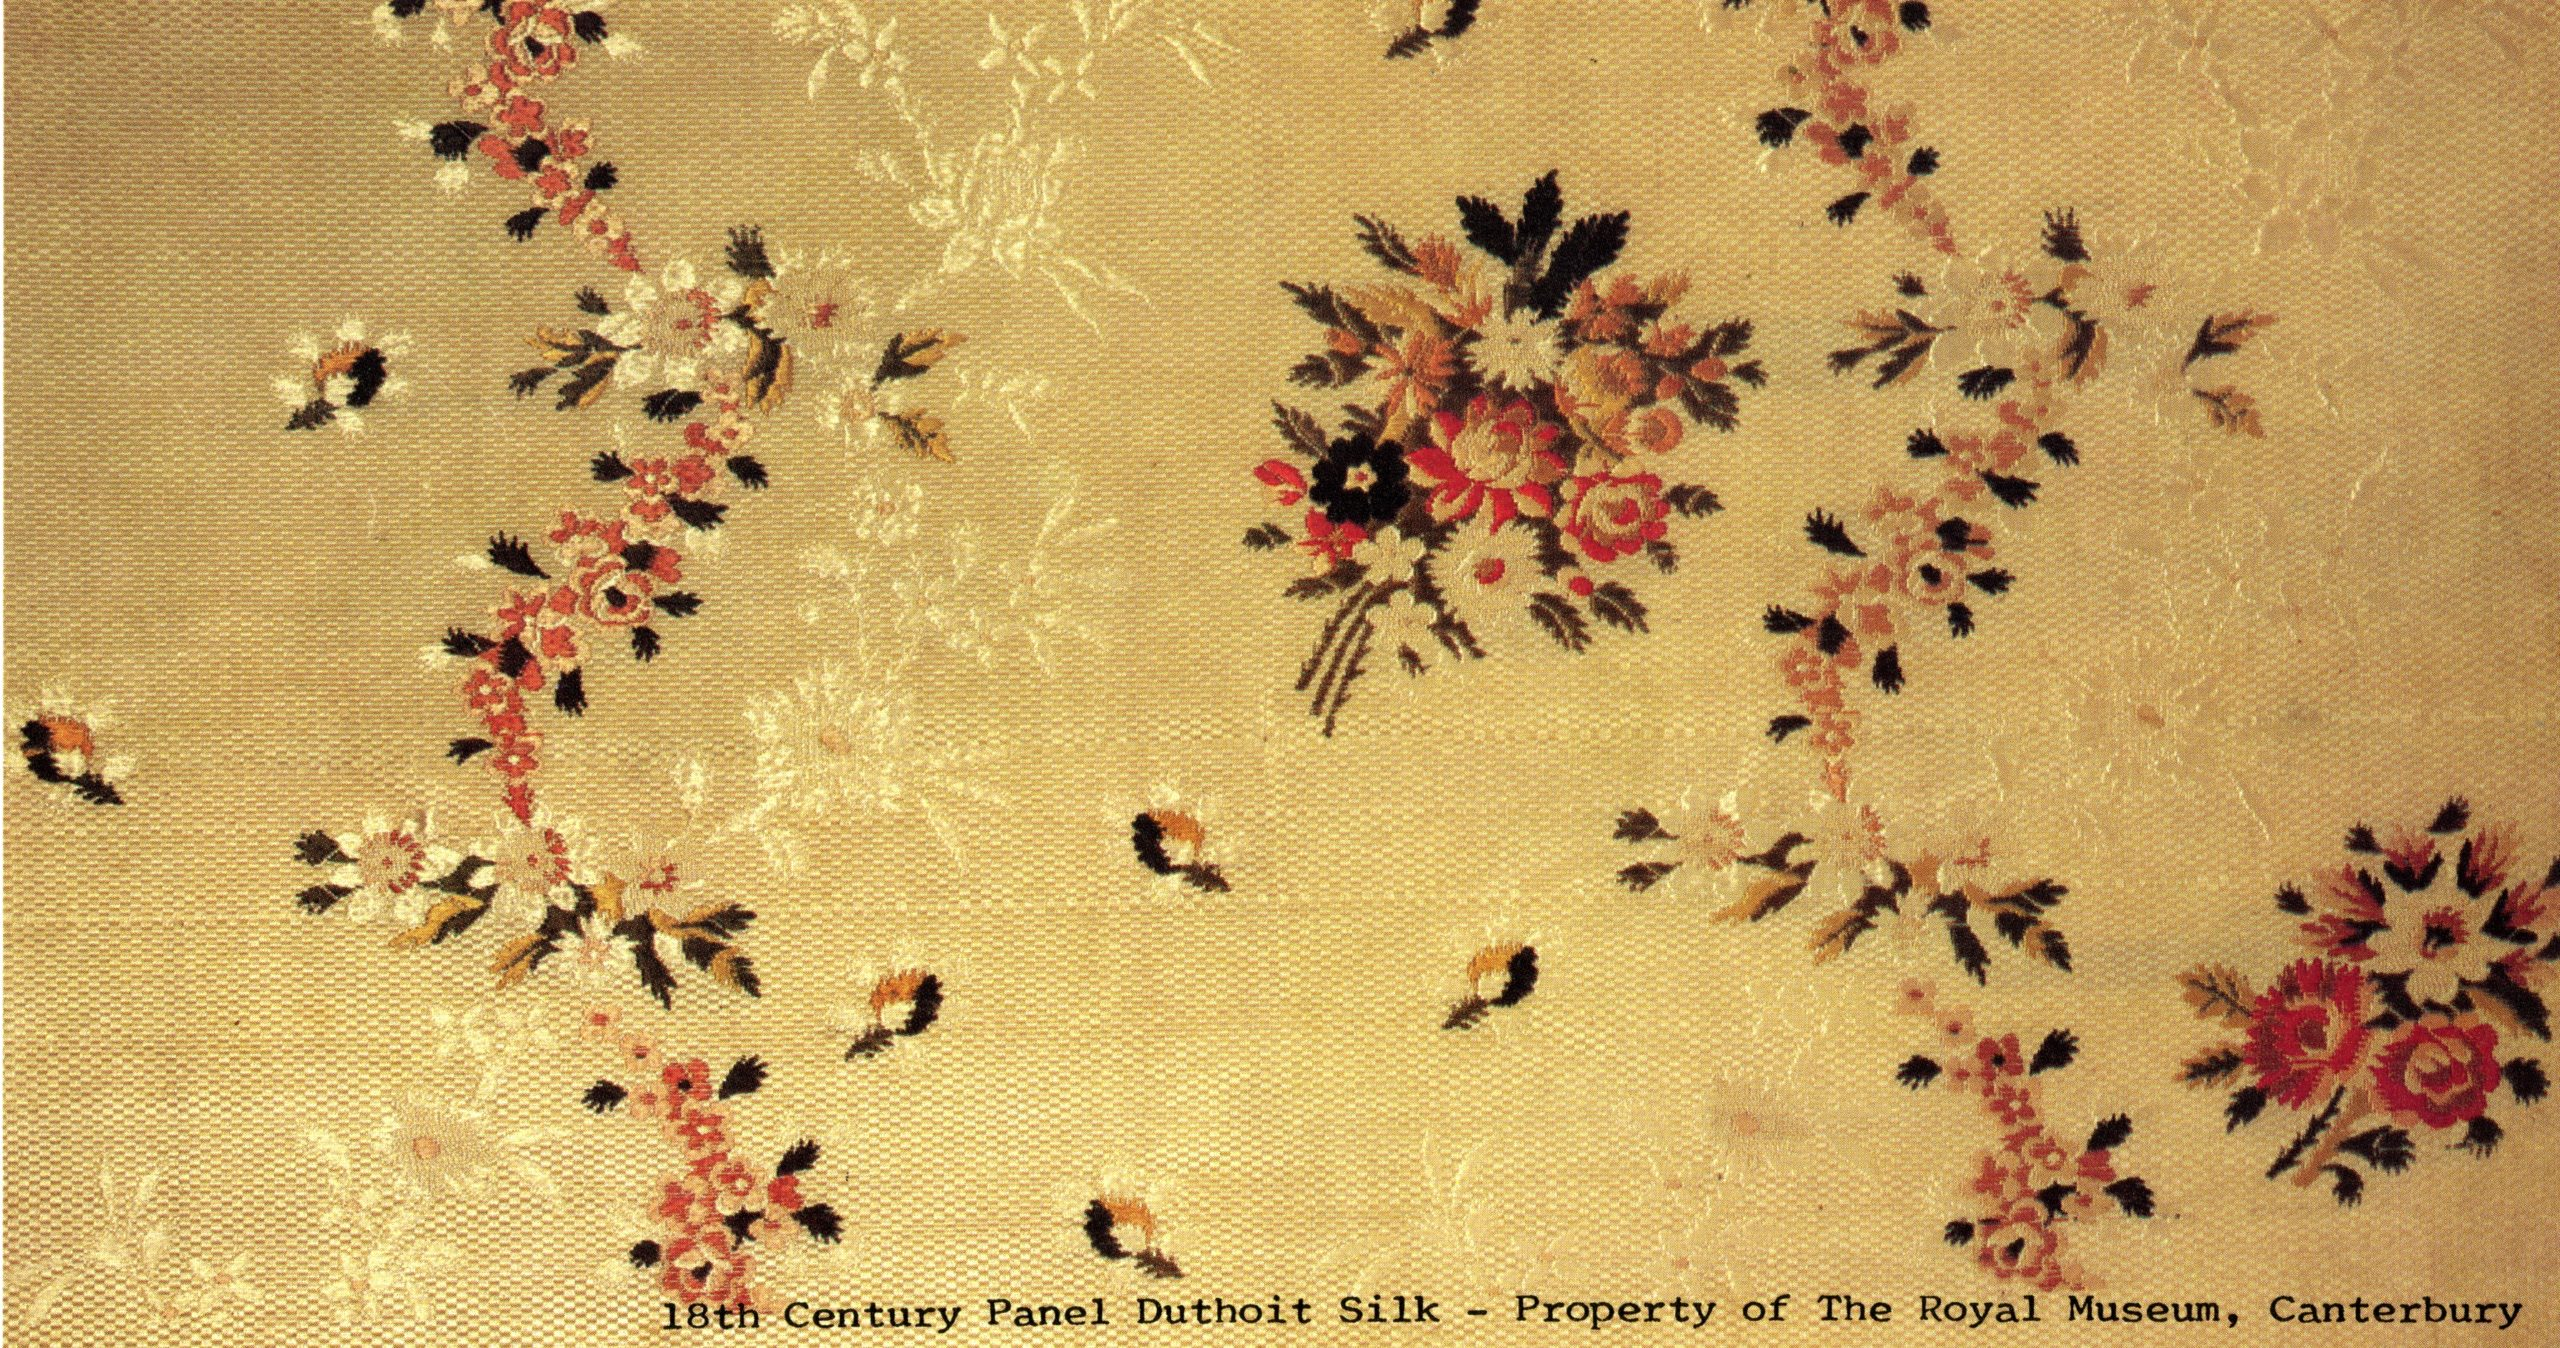 Fragment of silk woven by the Duthoit Family, image courtesy of Canterbury Museums